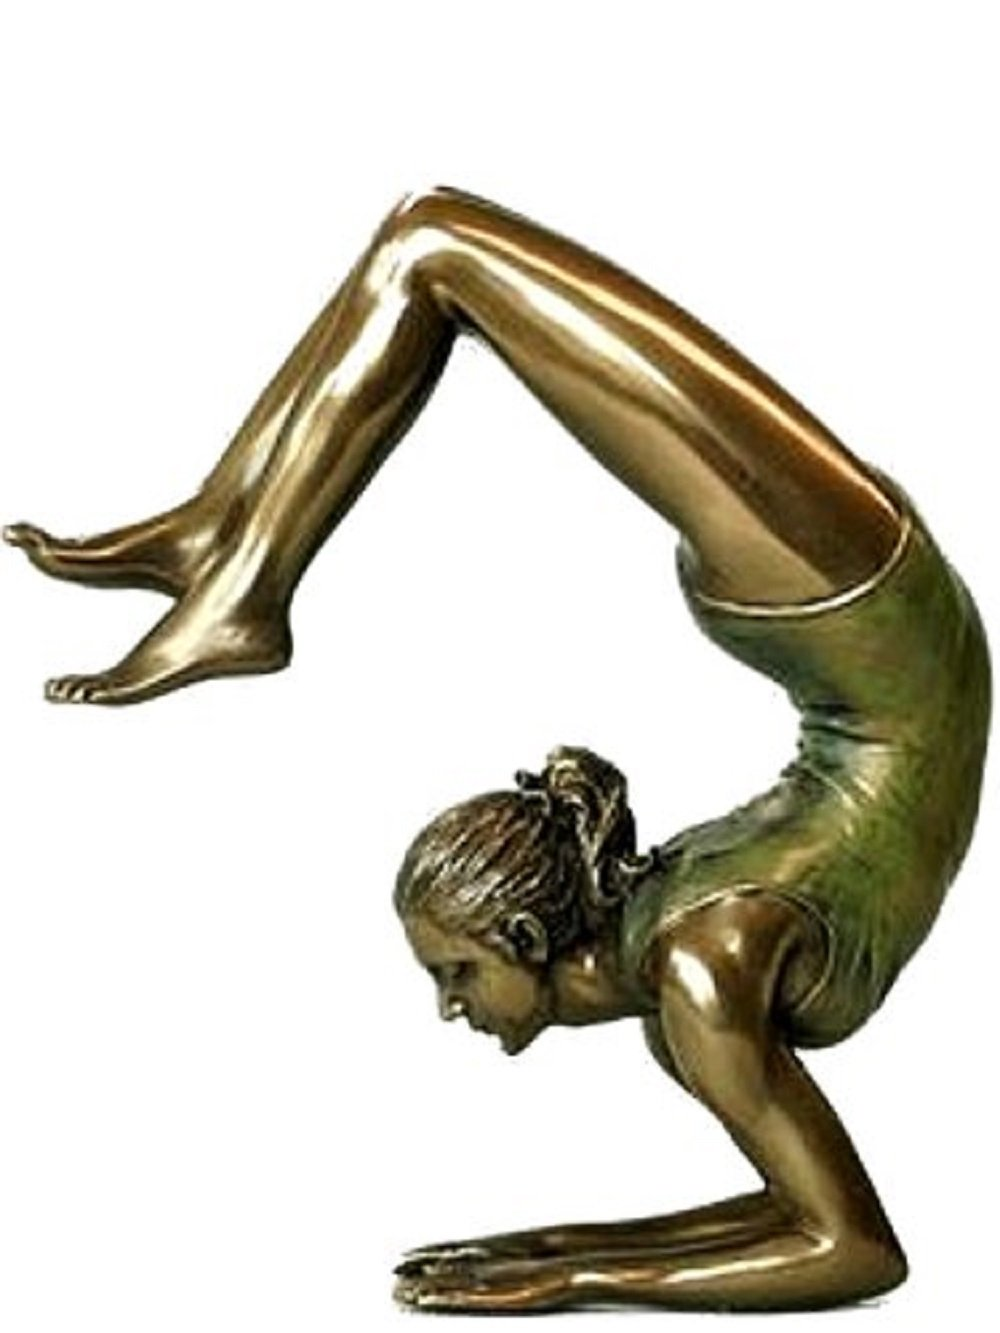 Body Talk Bronze Art Yoga Pose Sculpture (76115)